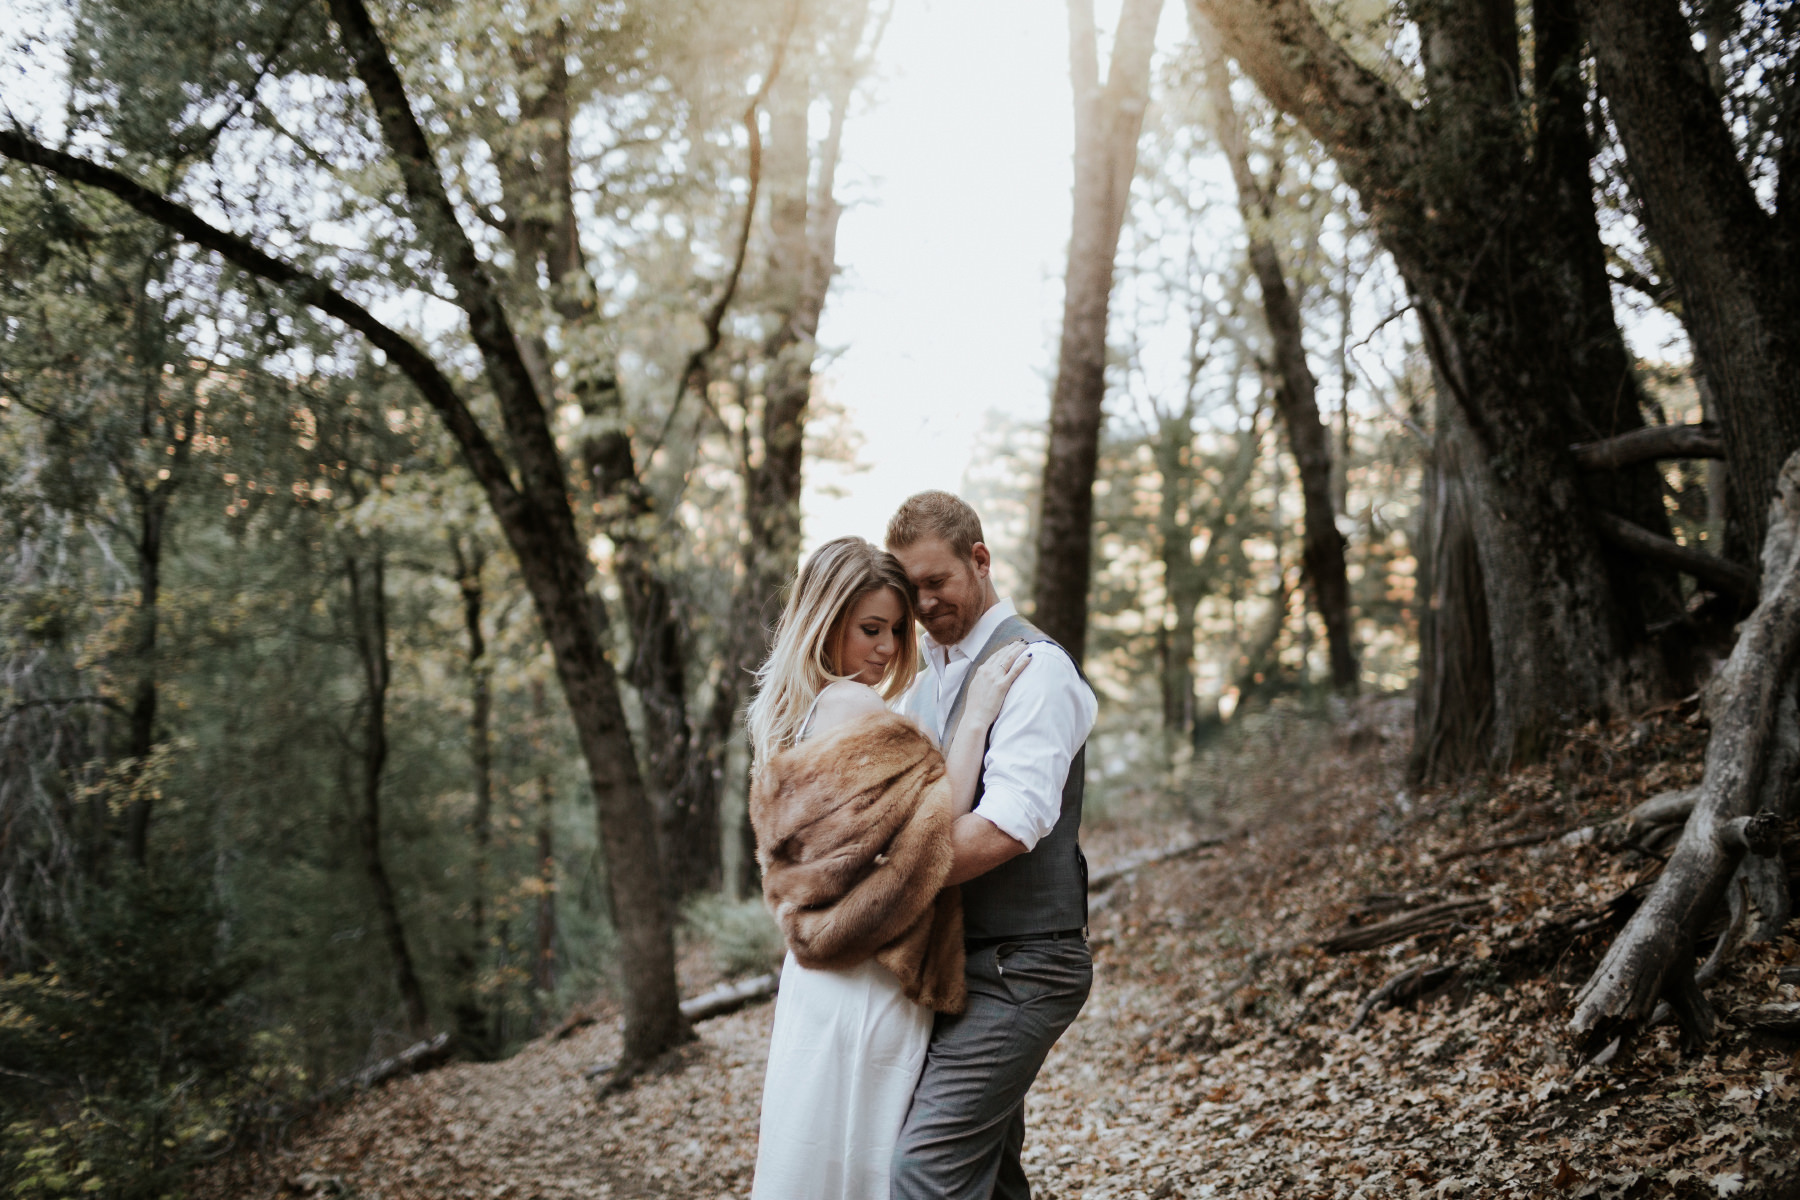 Engaged couple embracing in the woods at Palomar Mountain